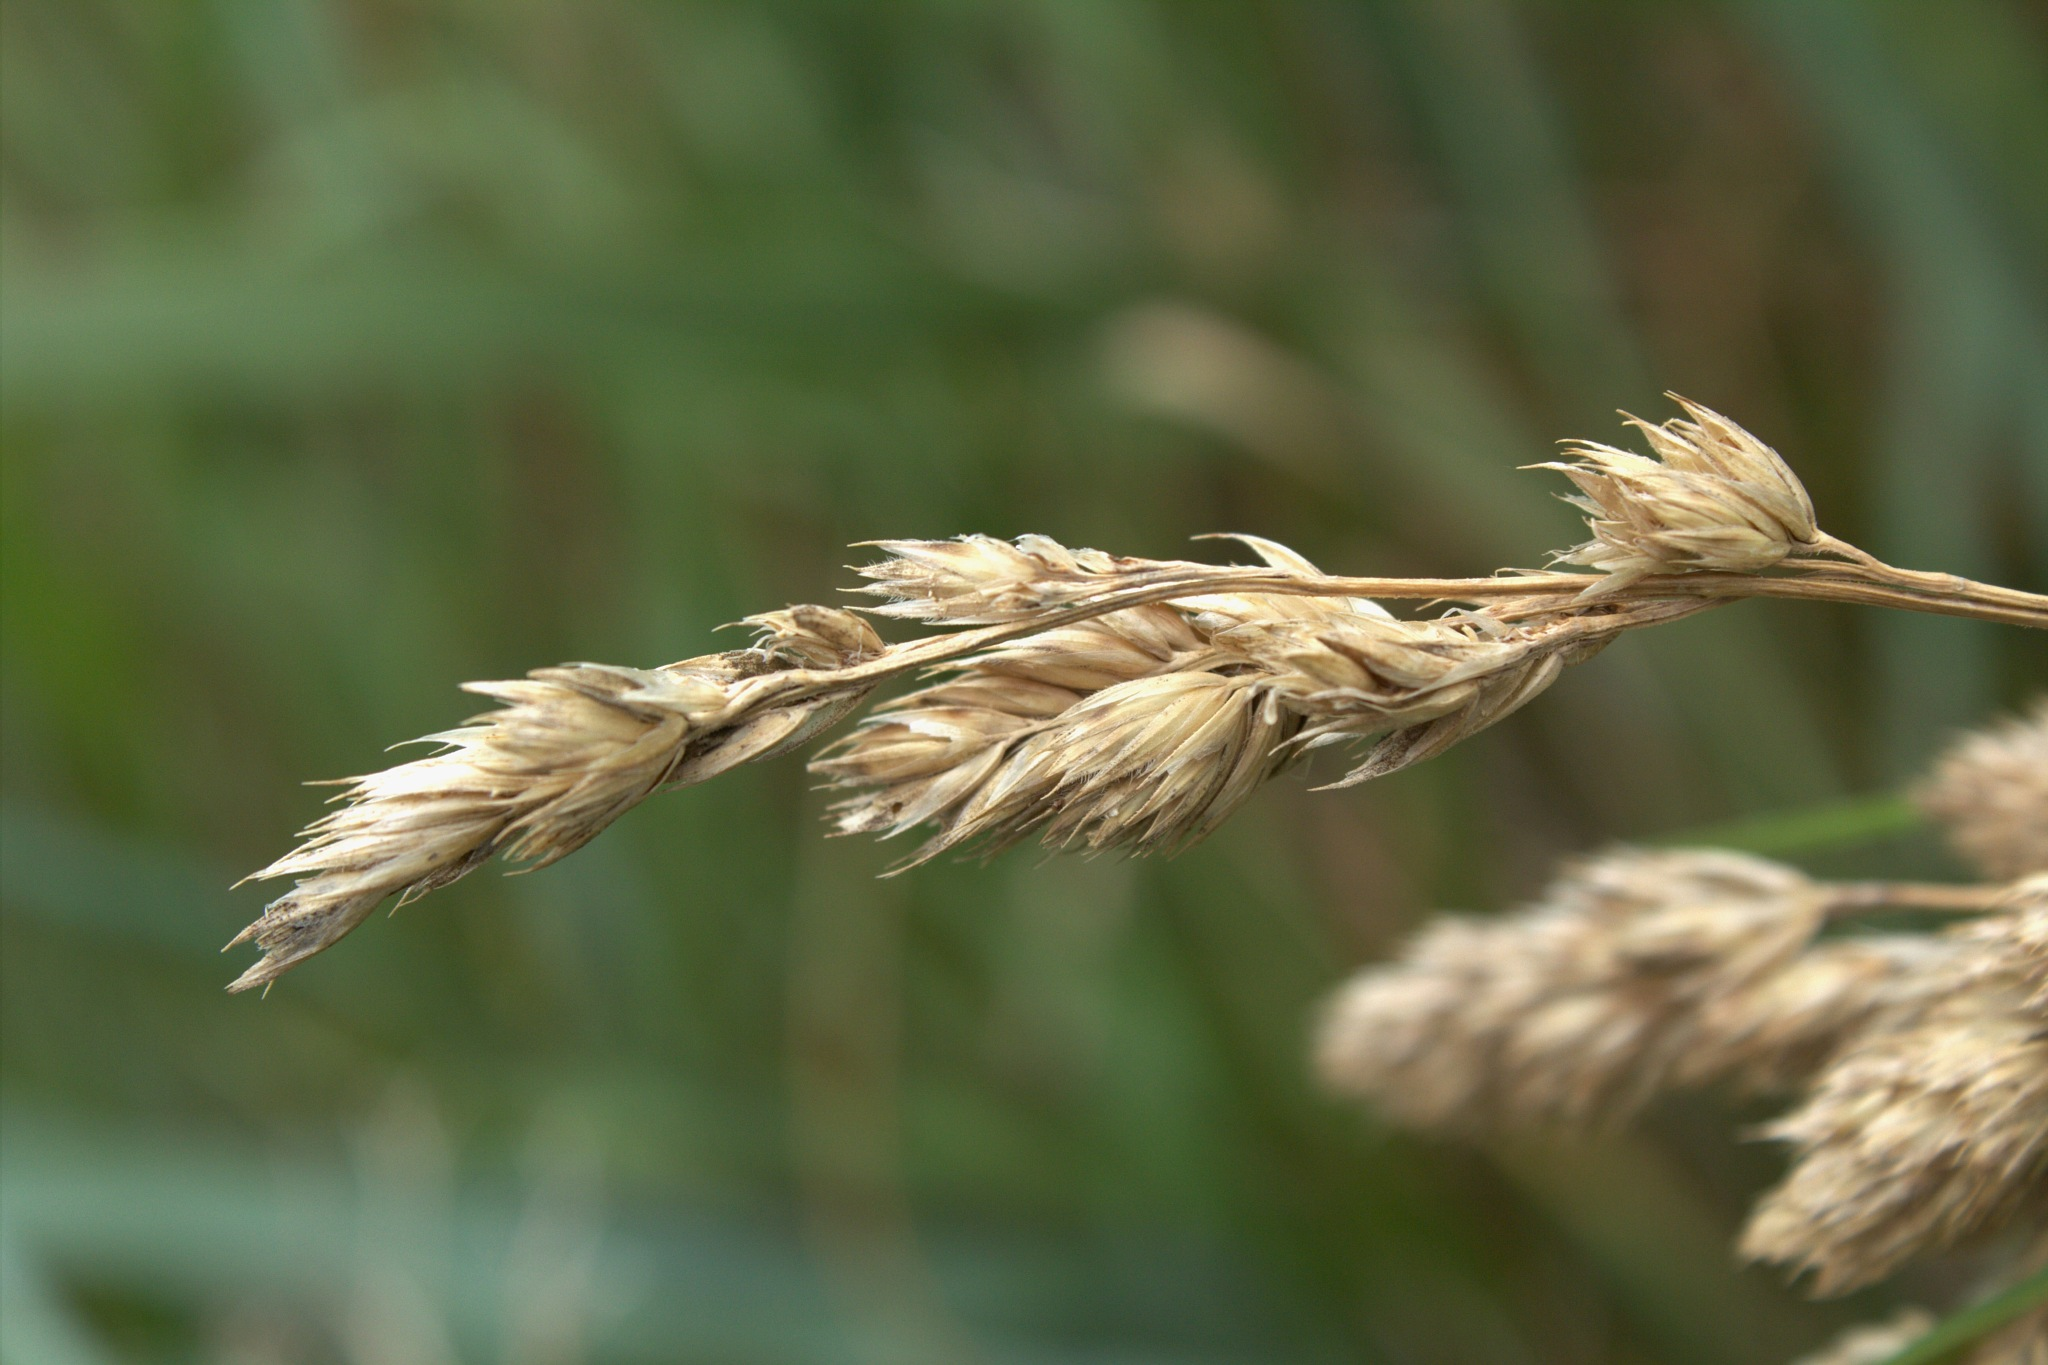 Grasses by Rich66